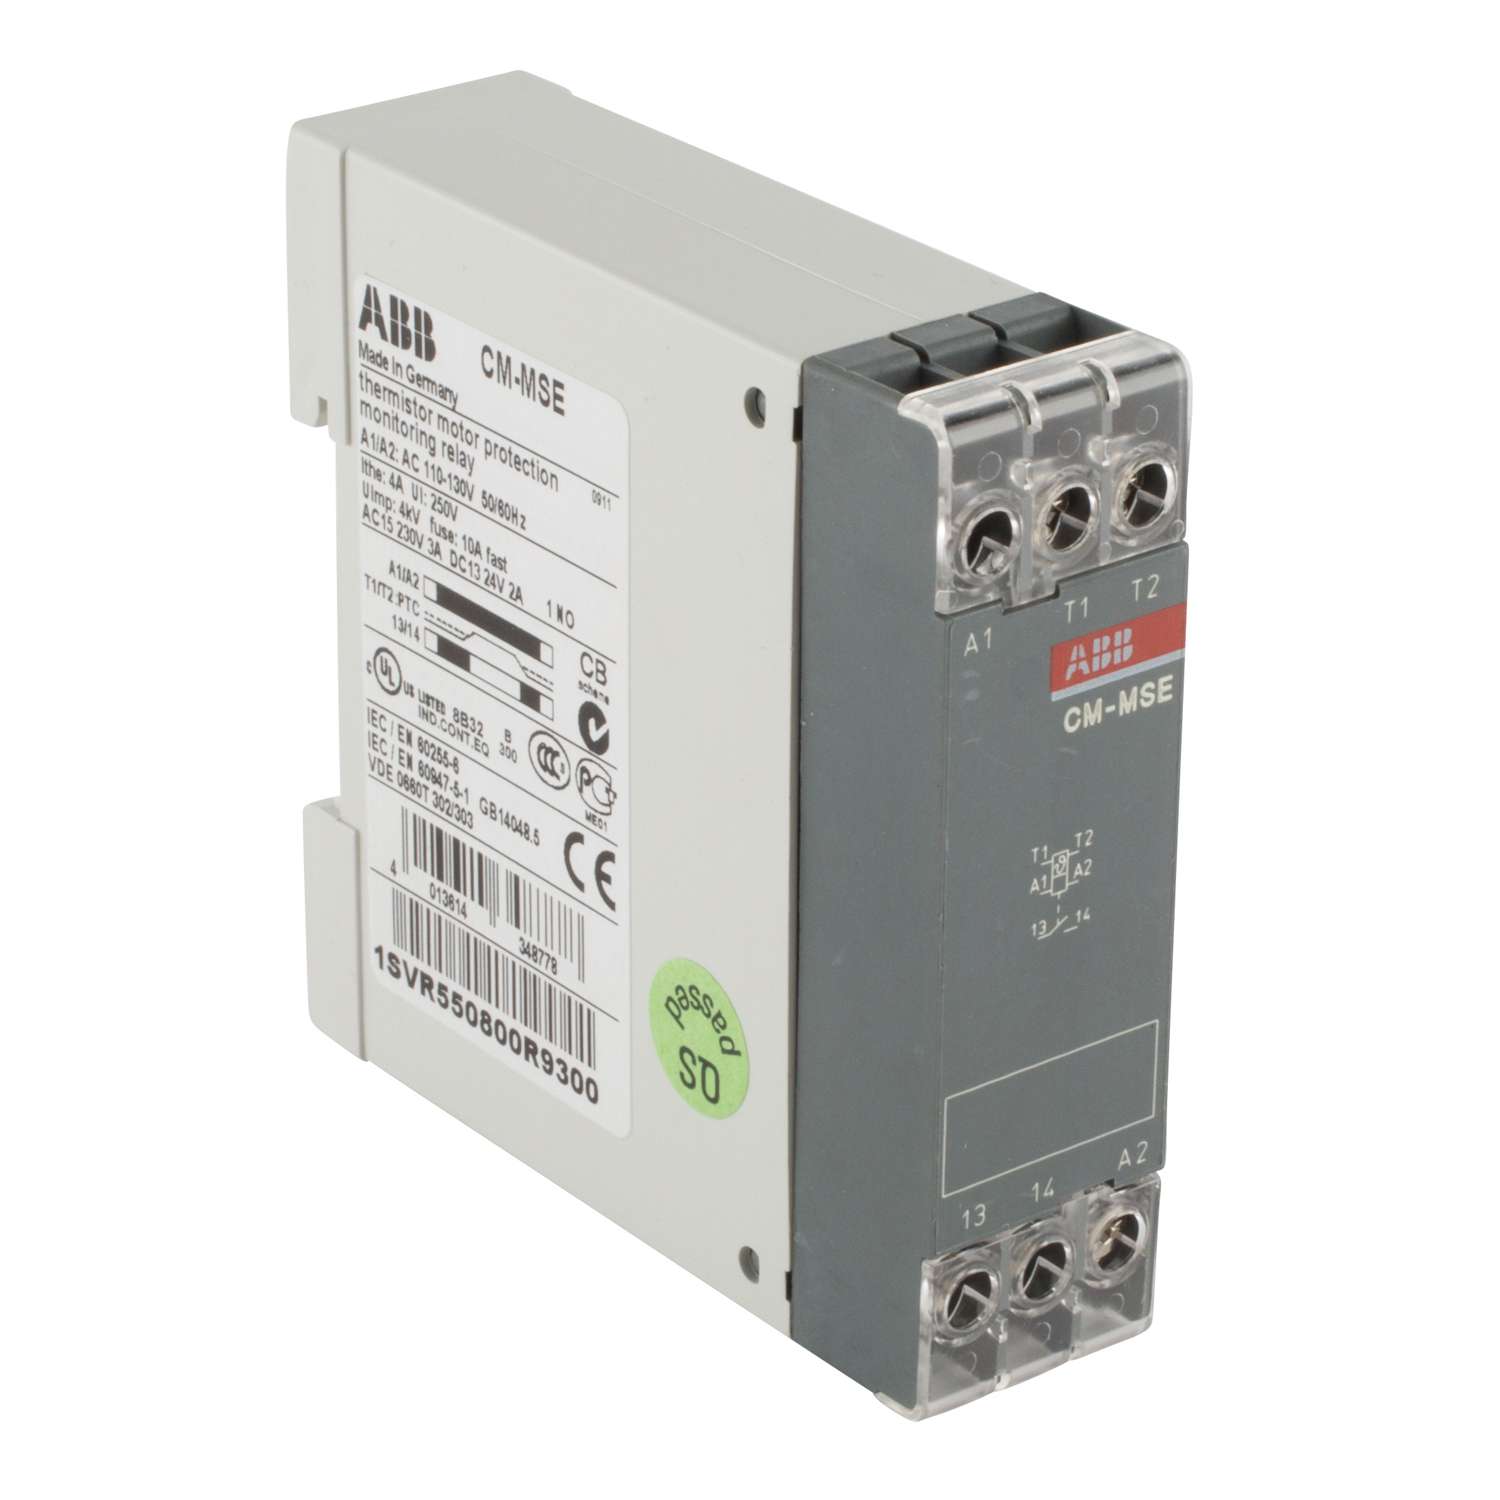 ABB 1SVR550800R9300 Thermistor Motor Protection Relay